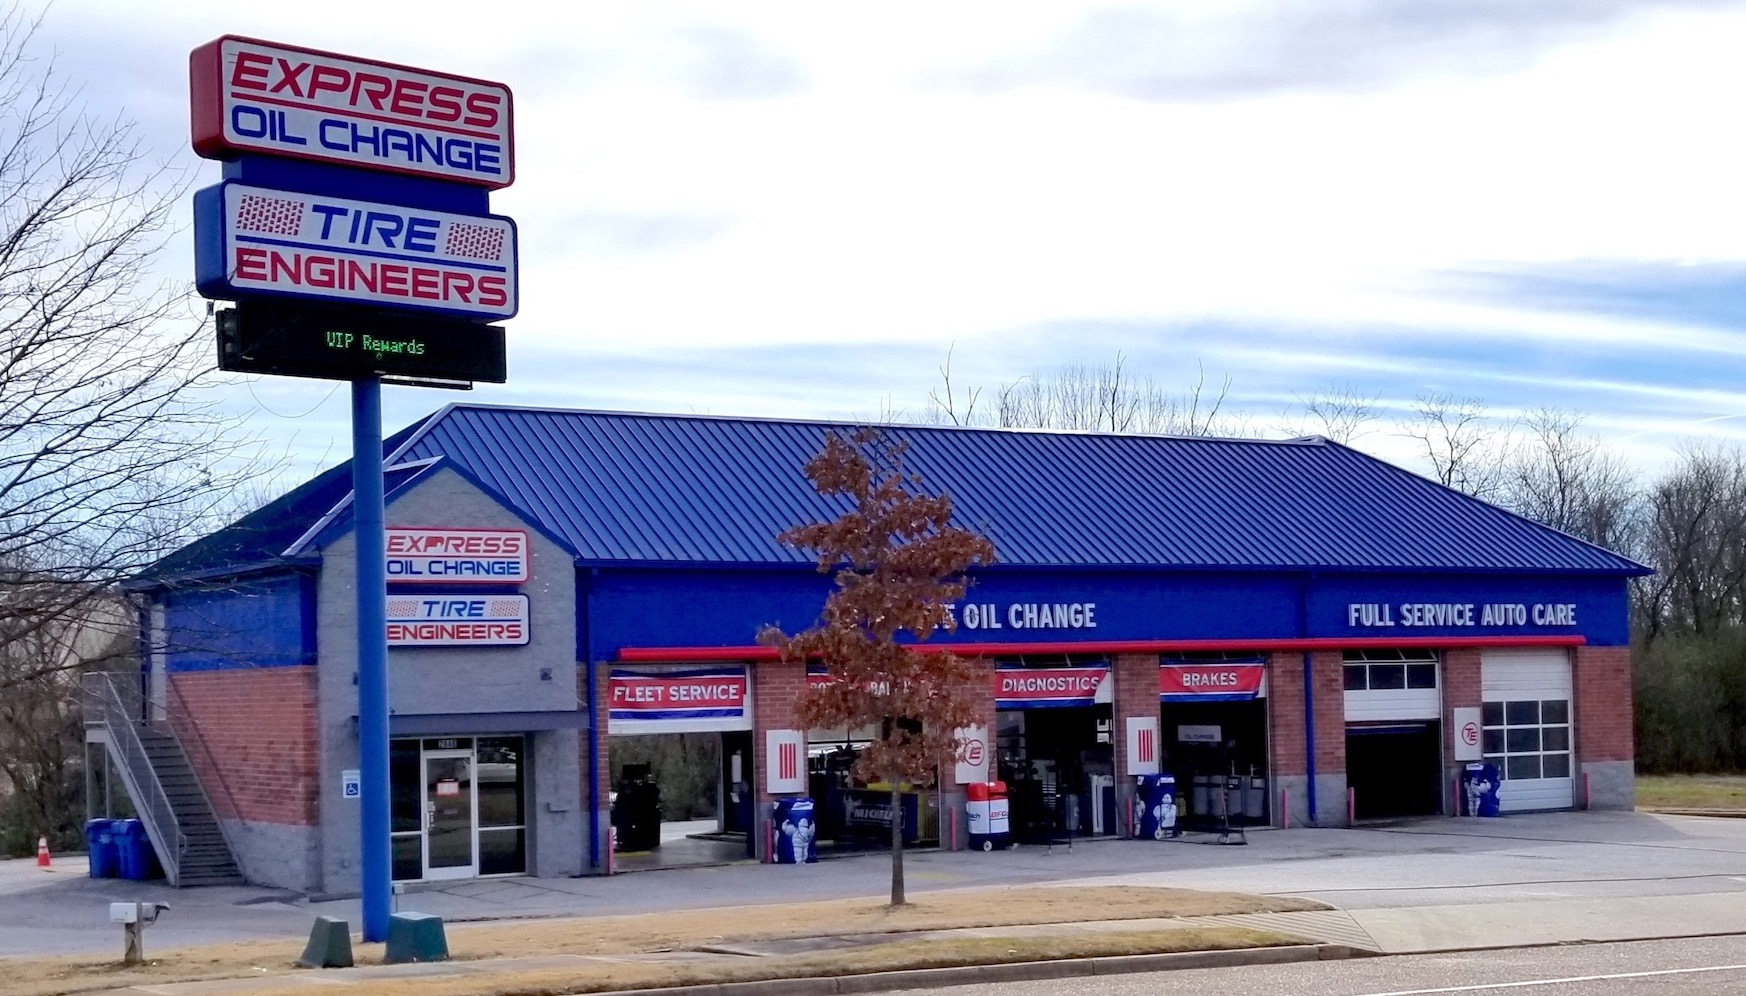 Express Oil Change & Tire Engineers at Memphis, TN - Dromedary Drive store